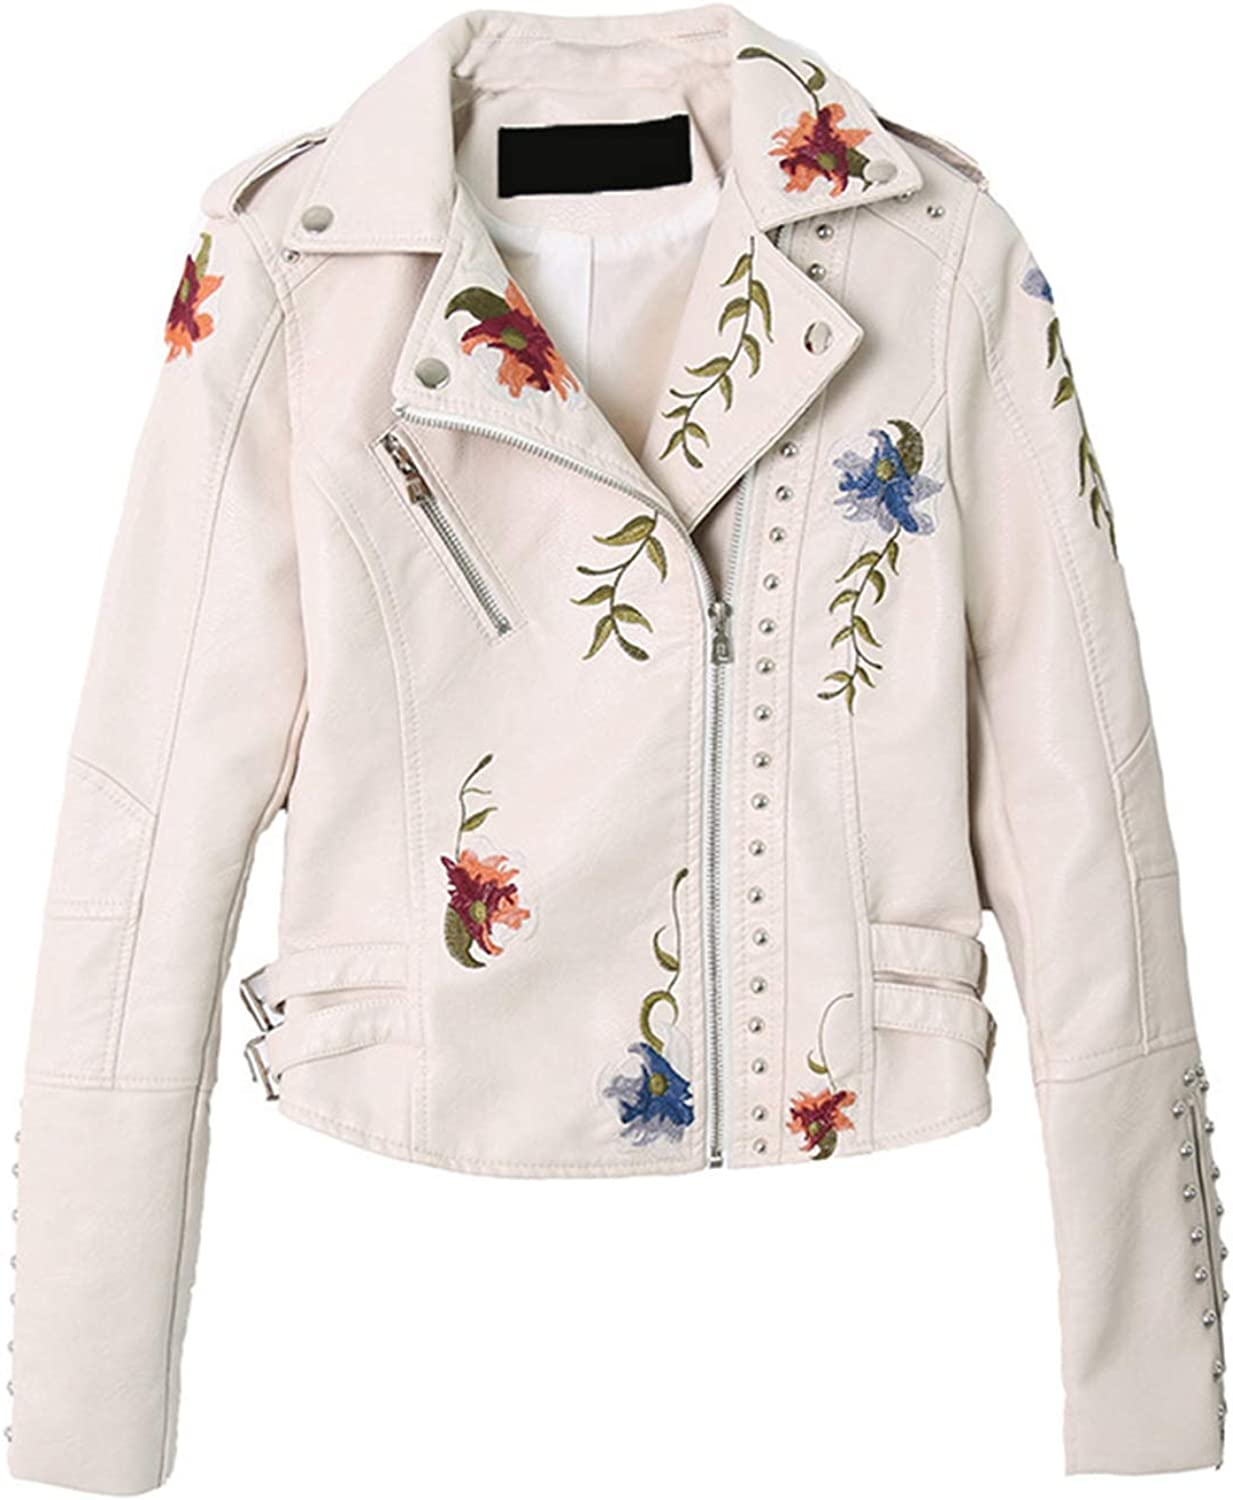 Hulione Embroidery Flowers Women Leather Jacket White Black Rivet Short Leather Coat Punk Female Outerwear